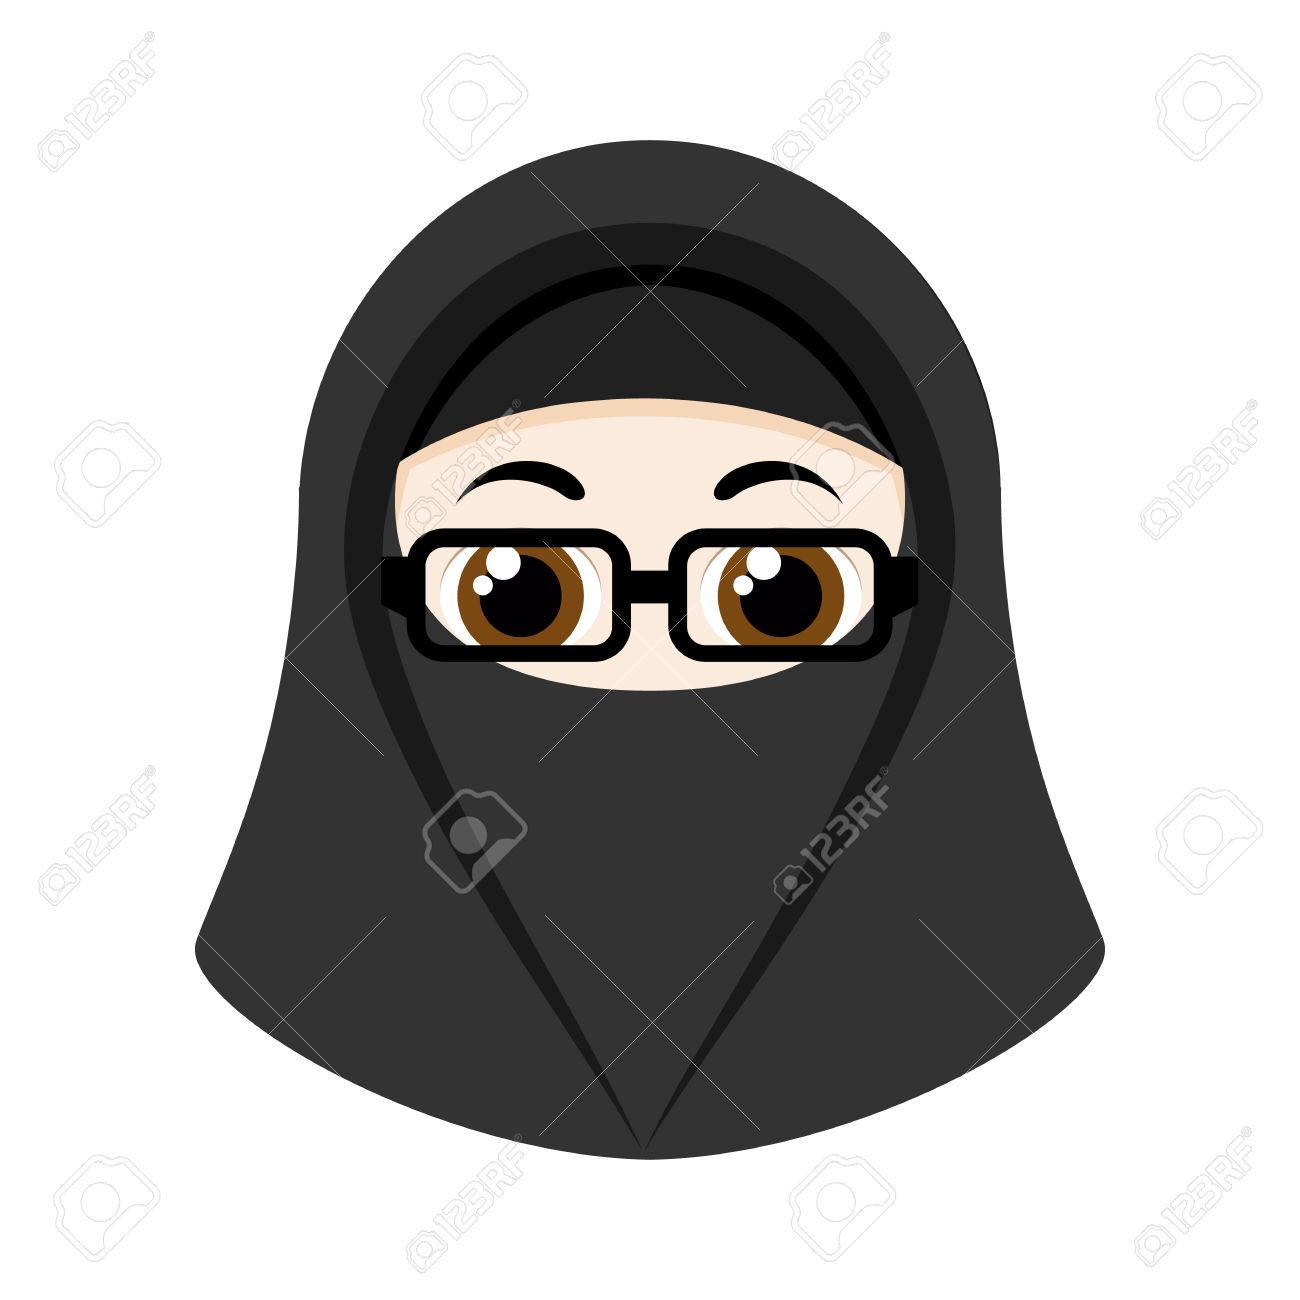 · muslim wedding couple cartoon royalty free stock. Cartoon Girl With Black Niqab Isolated On White Background Royalty Free Cliparts Vectors And Stock Illustration Image 56428342